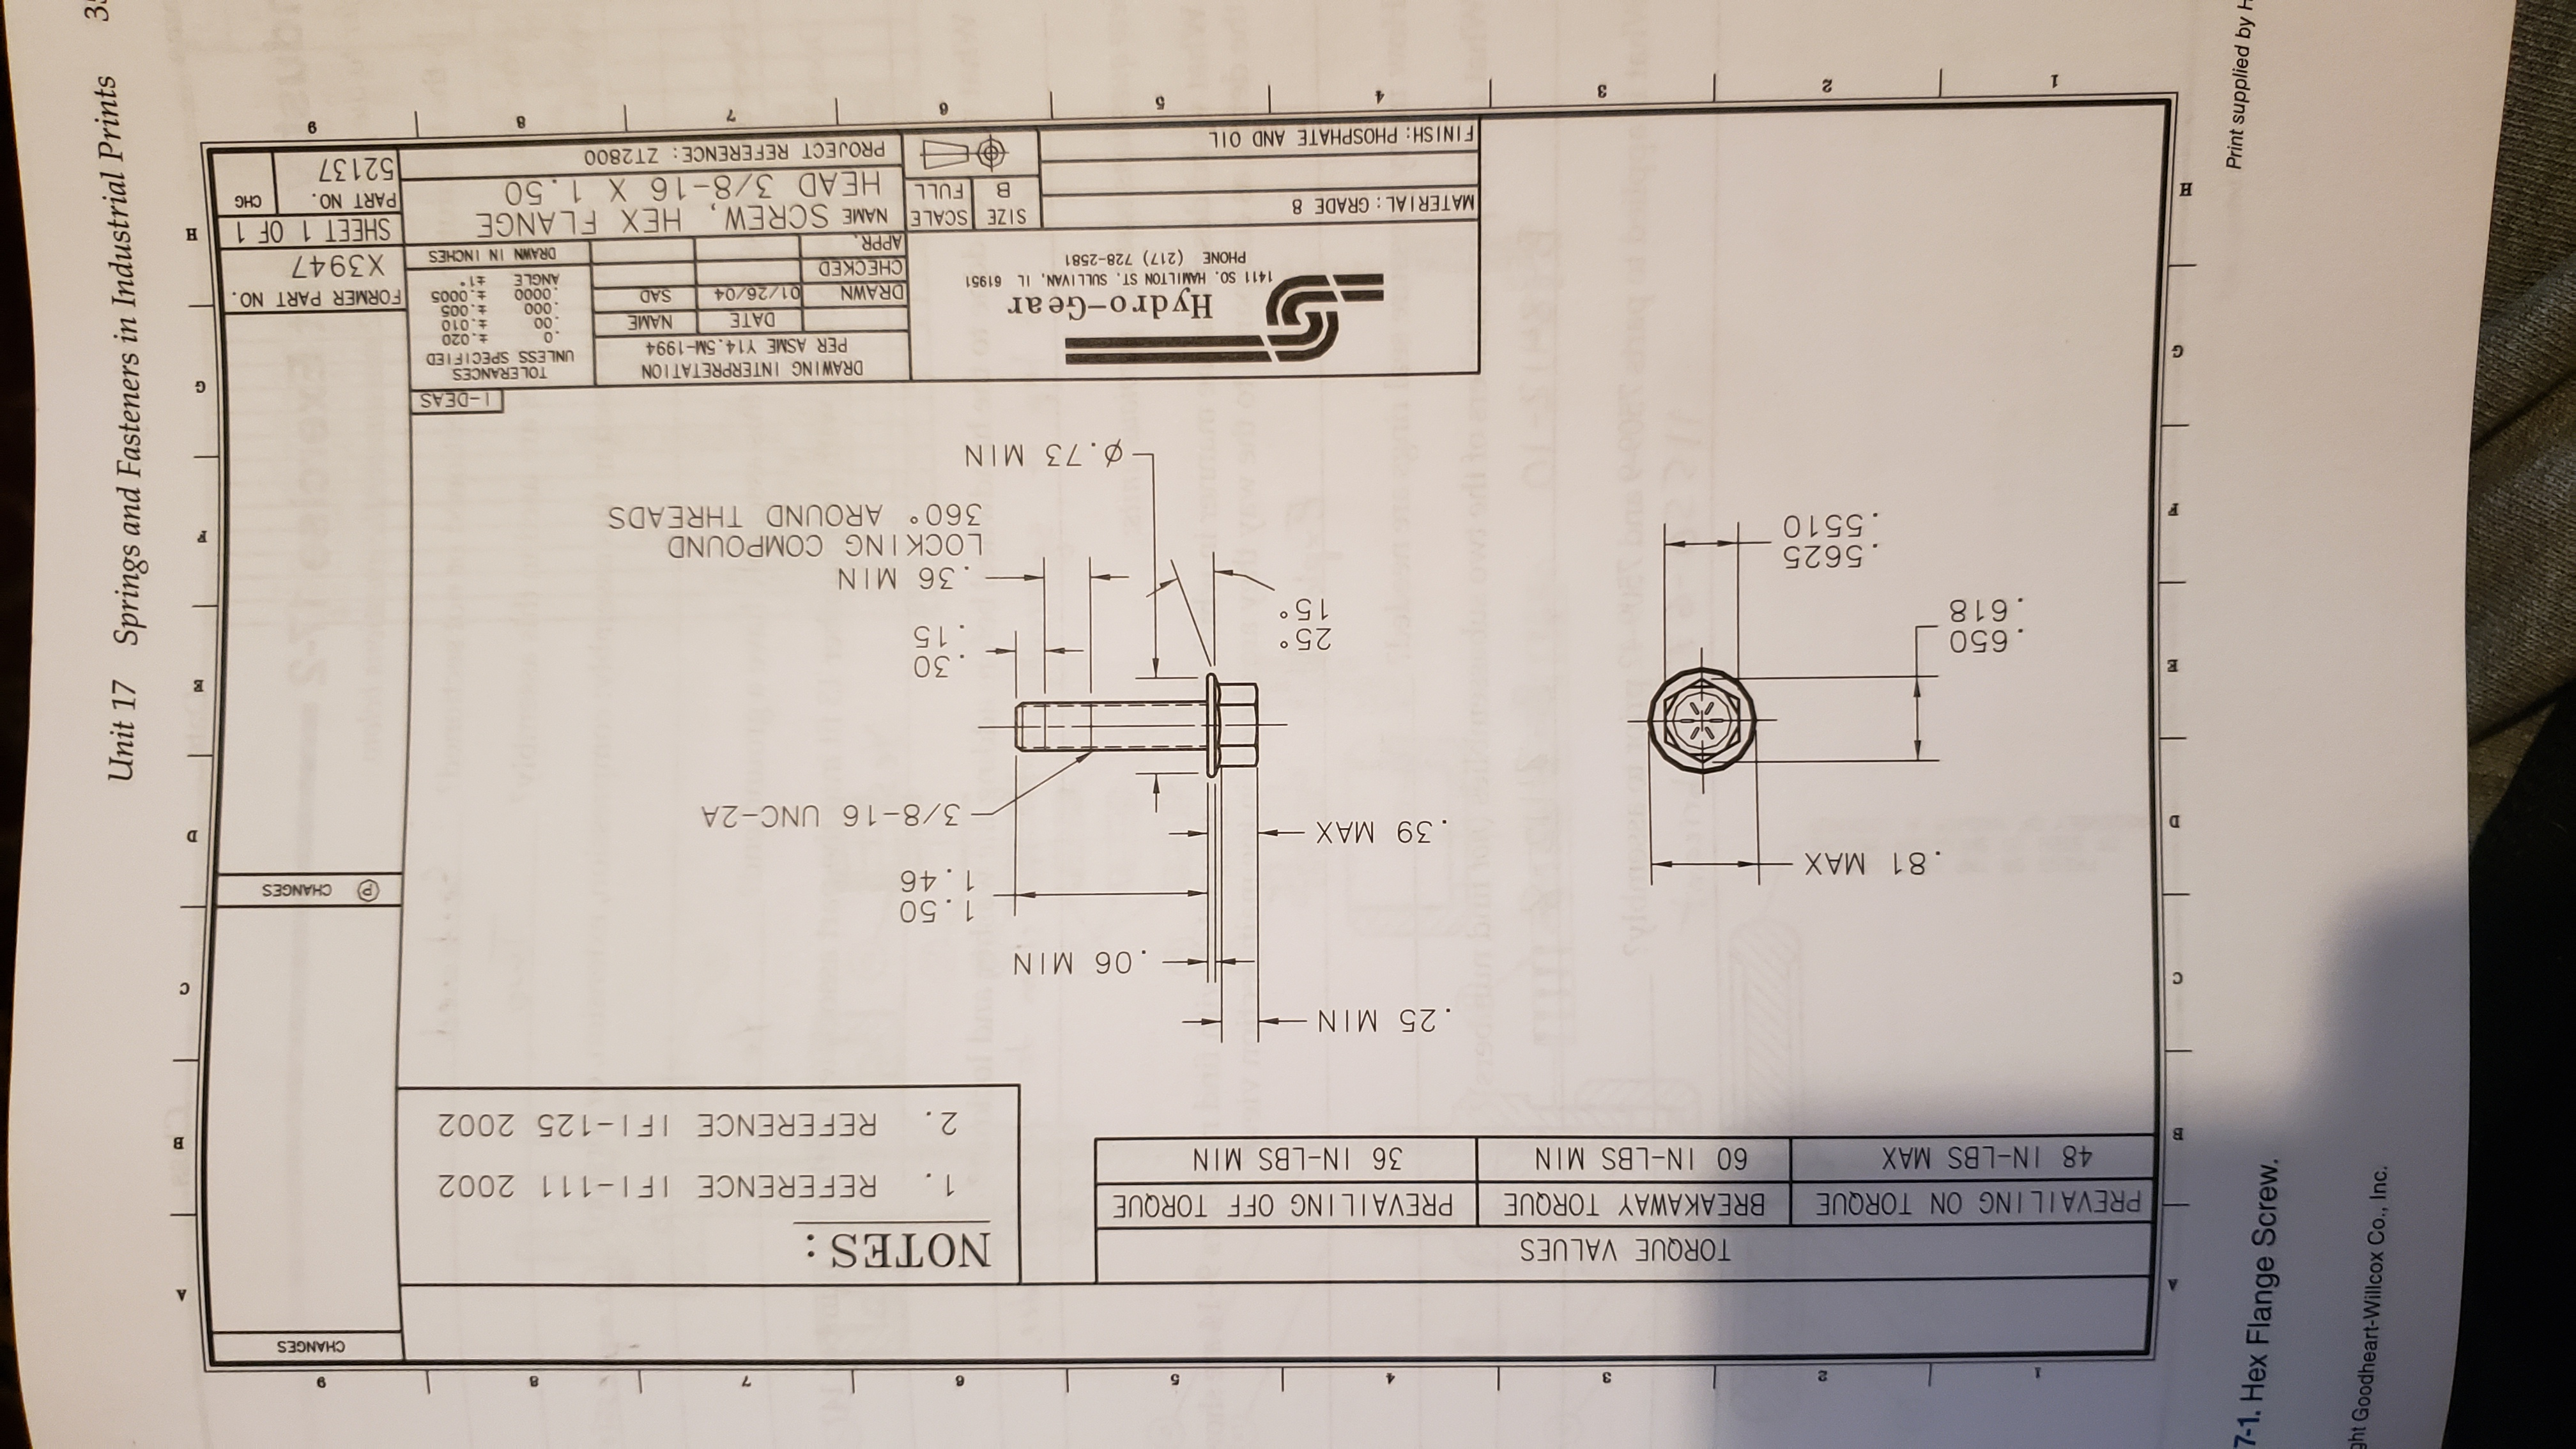 3 Unit 17 Springs and Fasteners in Industrial Prints 12 Print supplied by H 7-1. Hex Flange Screw. ht Goodheart-Willcox Co., Inc. CHANGES TORQUE VALUES BREAKAWAY TORQUE NOTES: PREVAILING ON TORQUE PREVAILING OFF TORQUE REFERENCE IFI-111 2002 48 IN-LBS MAX 60 IN-LBS MIN 36 IN-LBS MIN 2. REFERENCE IFI-125 2002 .25 MIN 1.50 1.46 .81 MAX CHANGES . 39 MAX 3/8-16 UNC- 2A .650 .618 . 30 .15 15 .36 MIN .5625 .5510 LOCK ING COMPOUND 360 AROUND THREADS ø. 73 MIN 1-DEAS DRAWING INTERPRETATION PER ASME Y14.5M-1994 TOLERANCES UNLESS SPECIFIED t.020 t.010 .005 Hydro-Gear 1411 SO. HAMILTON ST. SULLIVAN, IL 61951 PHONE (217) 728-2581 DATE NAME 00 000 DRAWN CHECKED APPR SIZE SCALE NAME SCREW 01/26/04 SAD 0000 ANGLE FORMER PART NO. த X3947 DRAWN IN INCHES HEX FLANGE HEAD 3/8-16 X 1.50 SHEET 1 OF 1 PART NO. 52137 MATERIAL: GRADE 8 н FULL CHG FINISH: PHOSPHATE AND OIL PROJECT REFERENCE: ZT2800